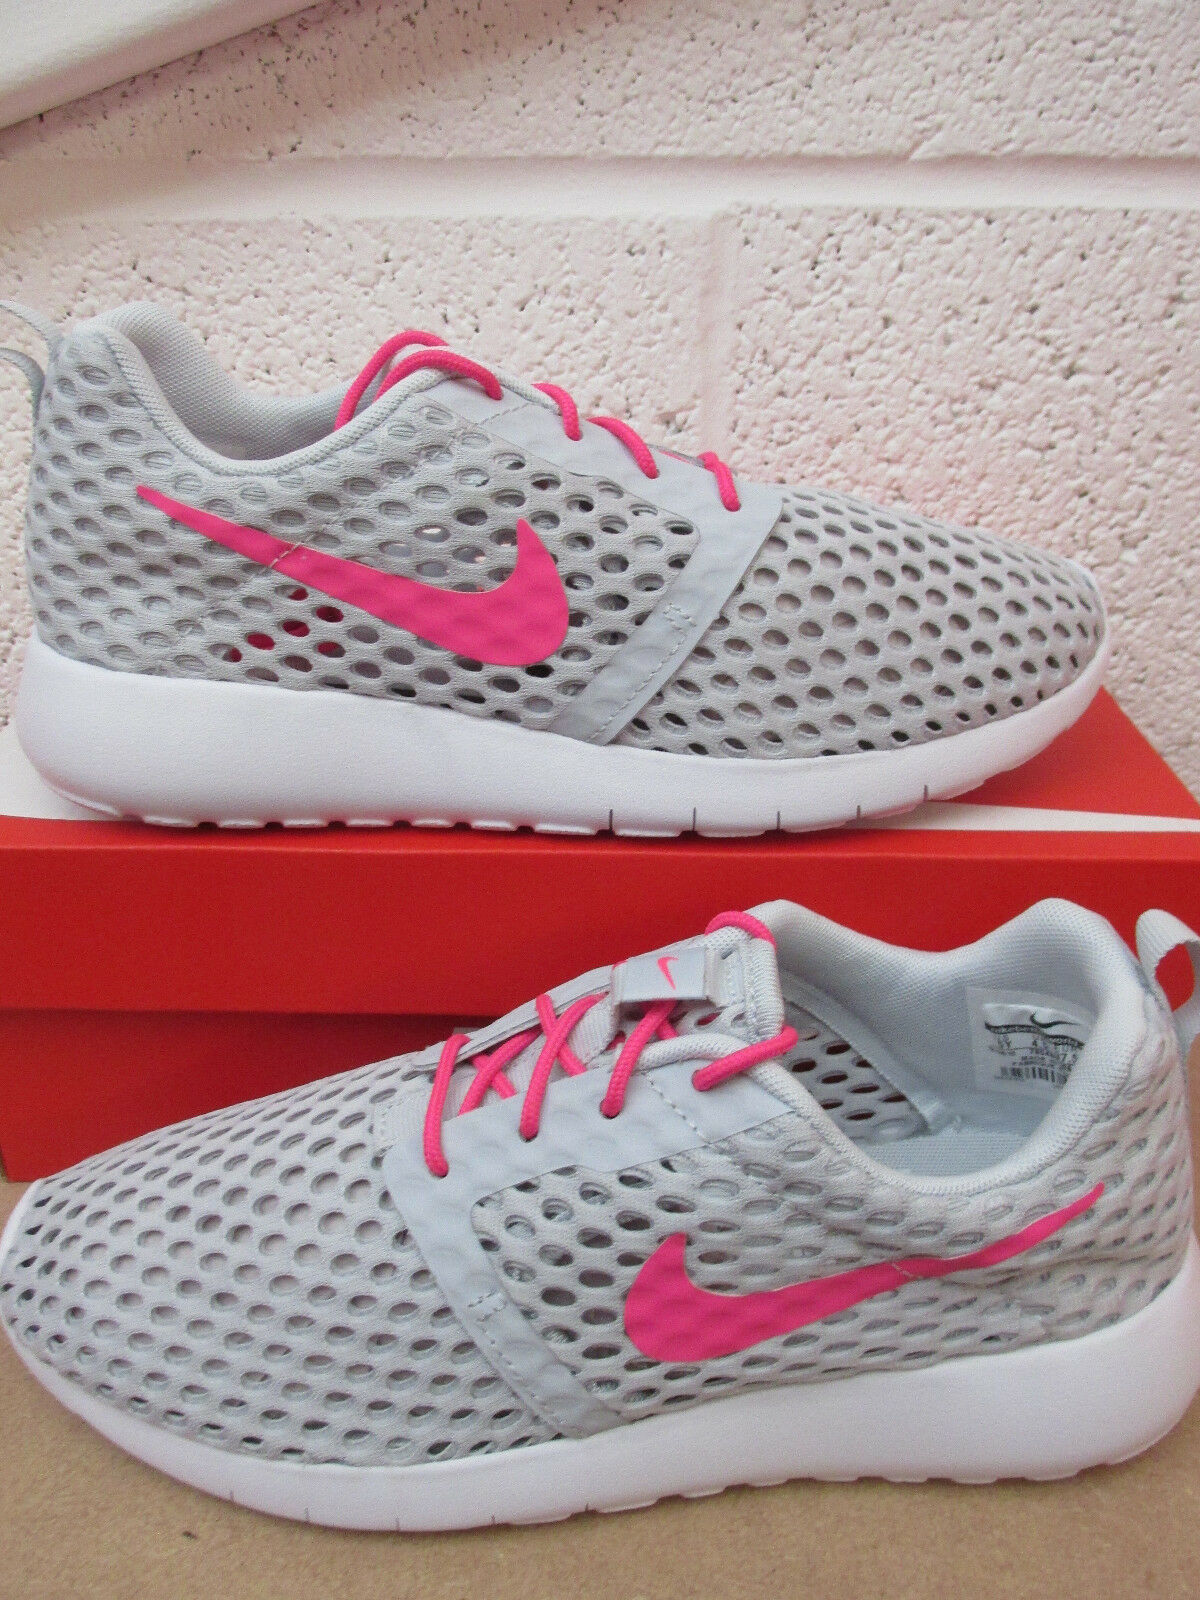 nike roshe one flight weight (GS) trainers 705486 006 sneakers shoes